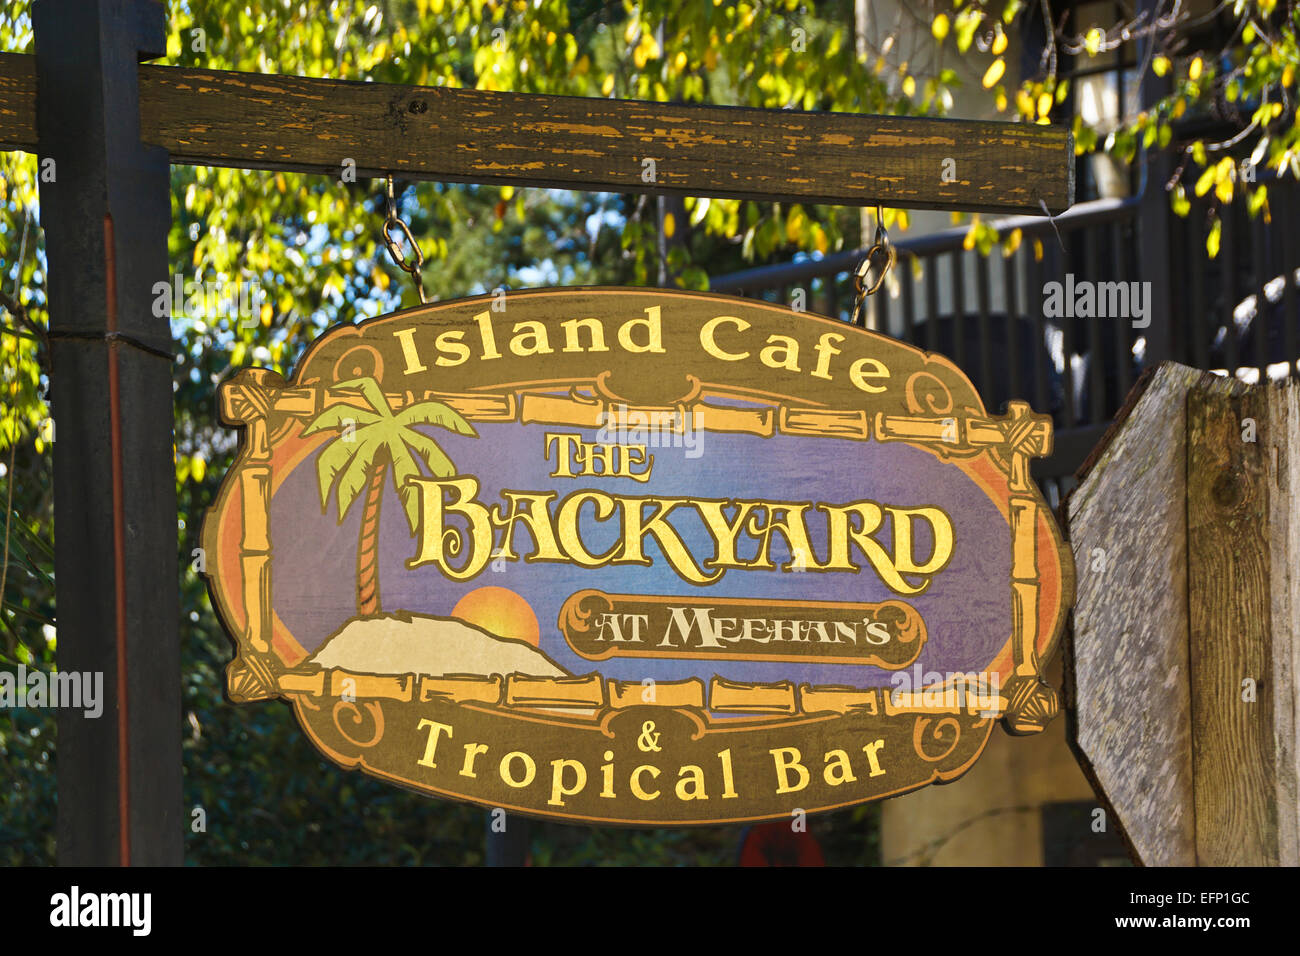 Sign for The Backyard at Meehan's Island Cafe & Tropical Bar in old town of St. Augustine, Florida - Stock Image